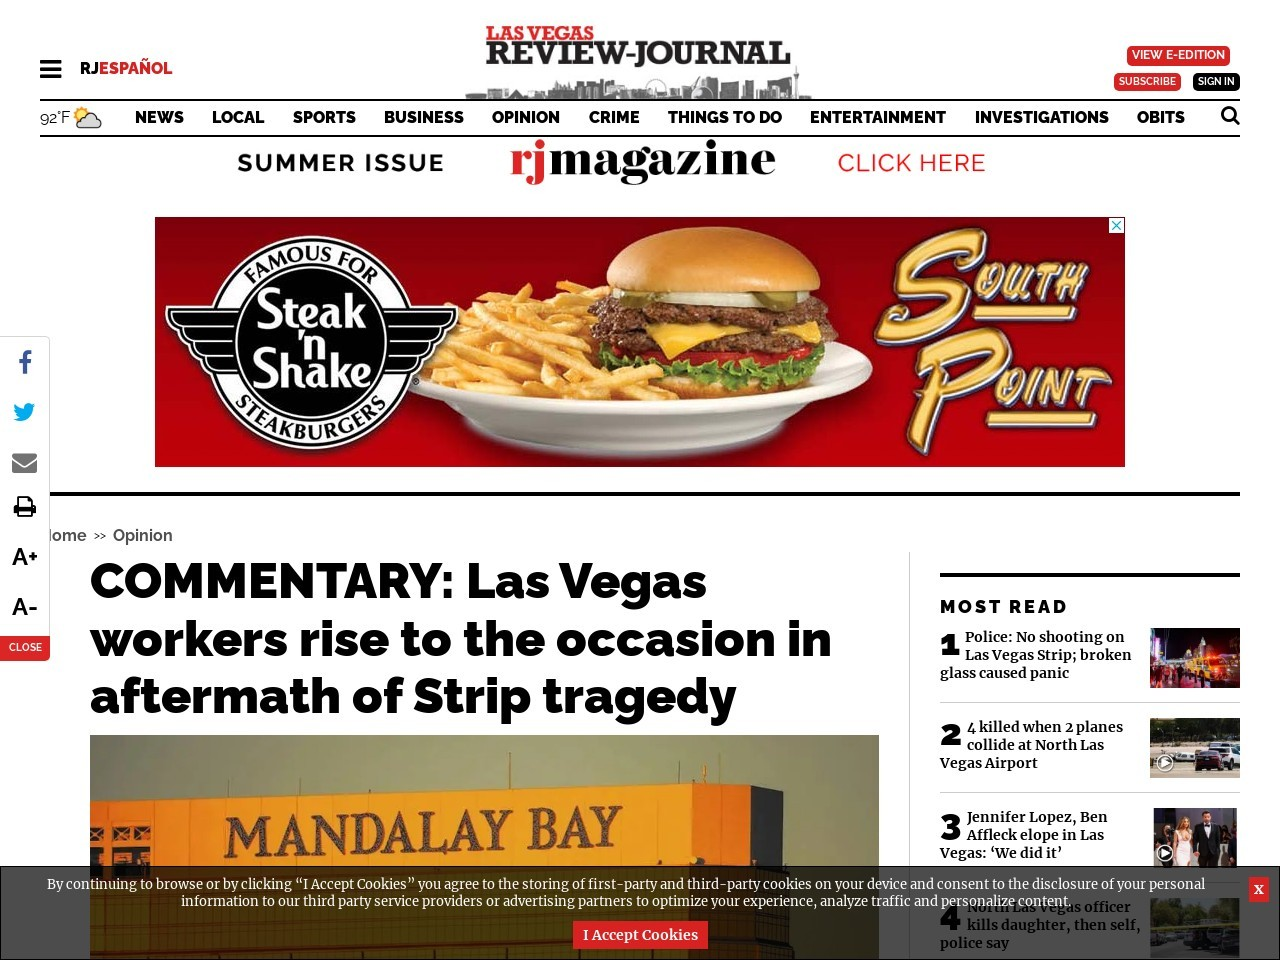 COMMENTARY: Las Vegas workers rise to the occasion in aftermath of Strip tragedy